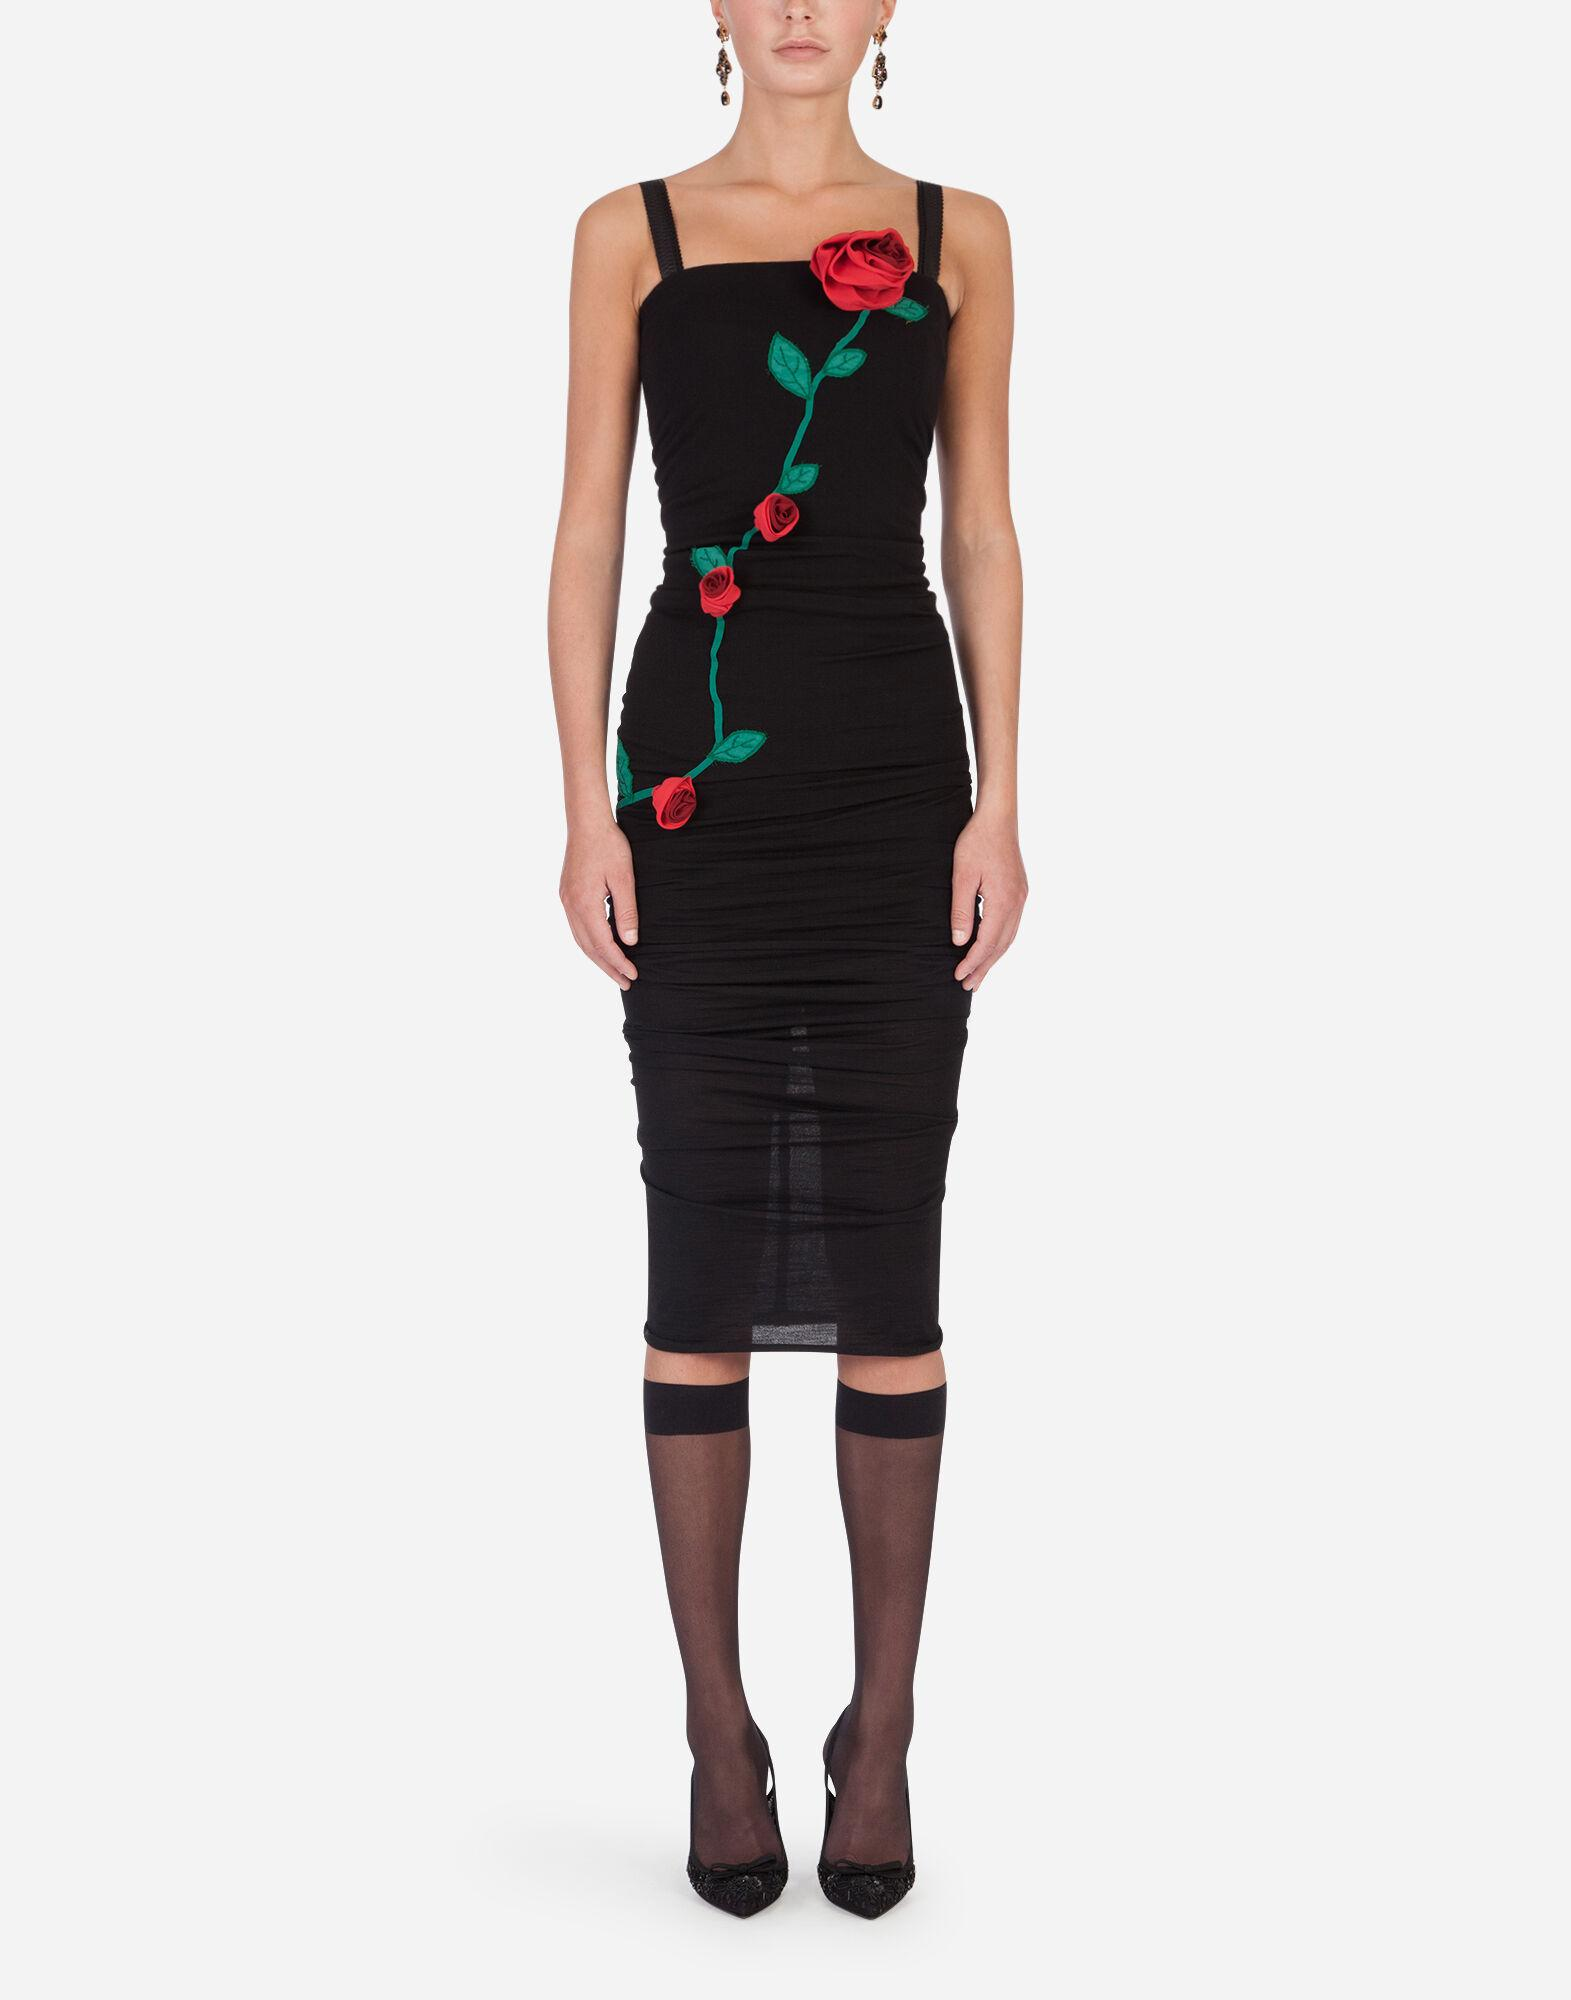 Sheath dress with rose embroidery